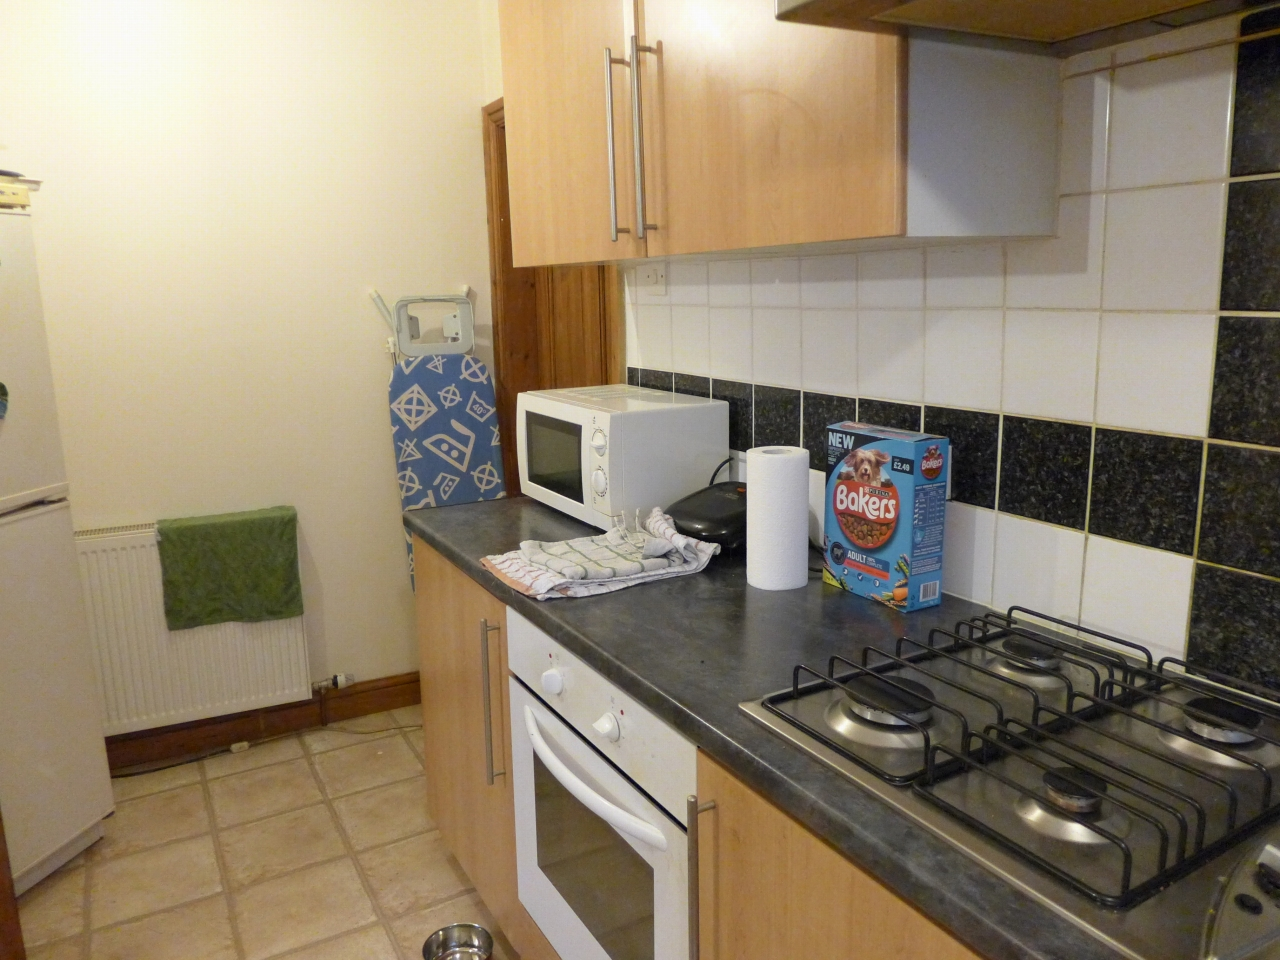 2 bedroom apartment flat/apartment For Sale in Calderdale - Photograph 5.